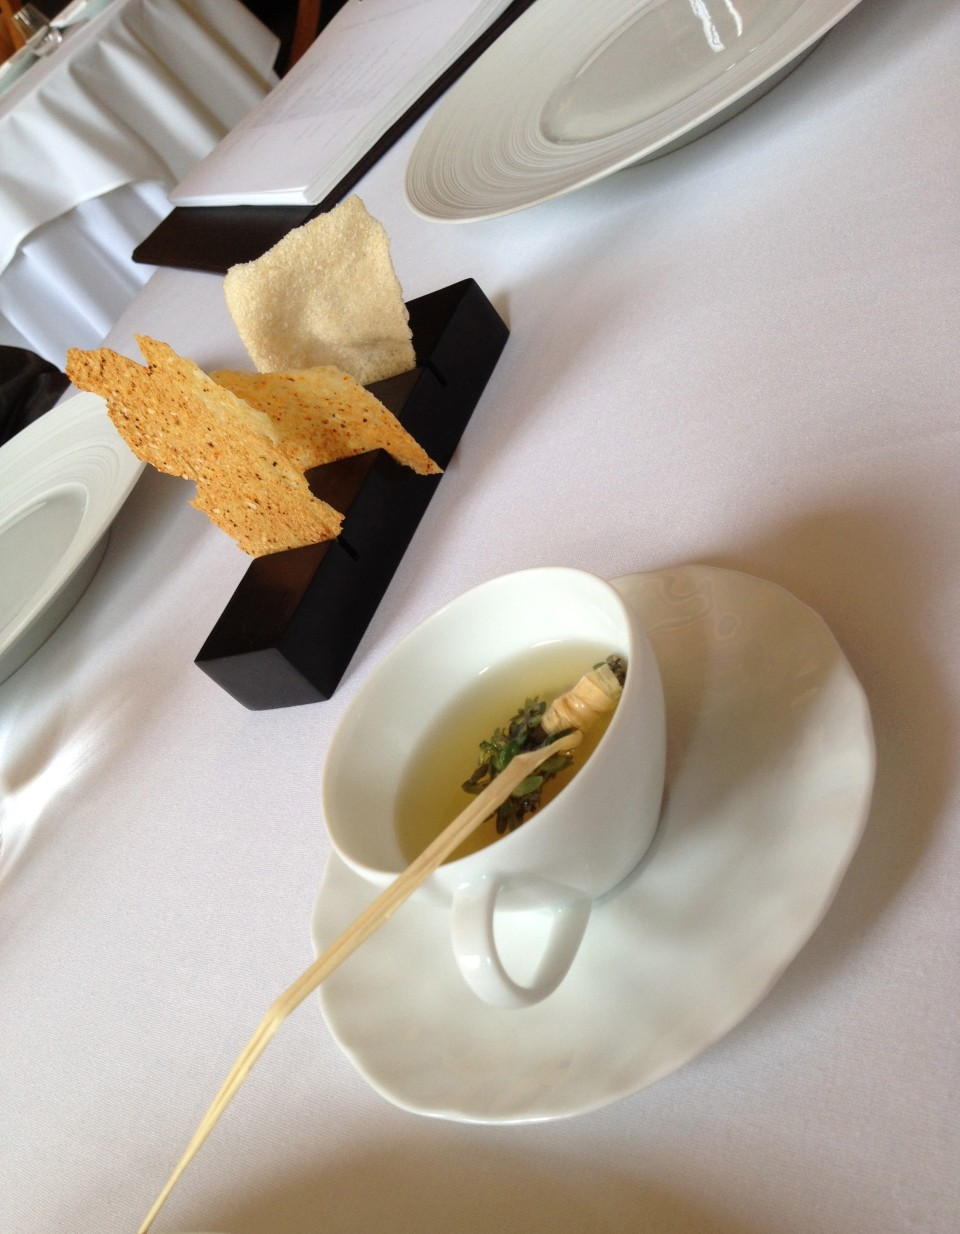 TASTING MENU | 1 - TOMATO Tea with Parmesan Lavash and Lemon Thyme